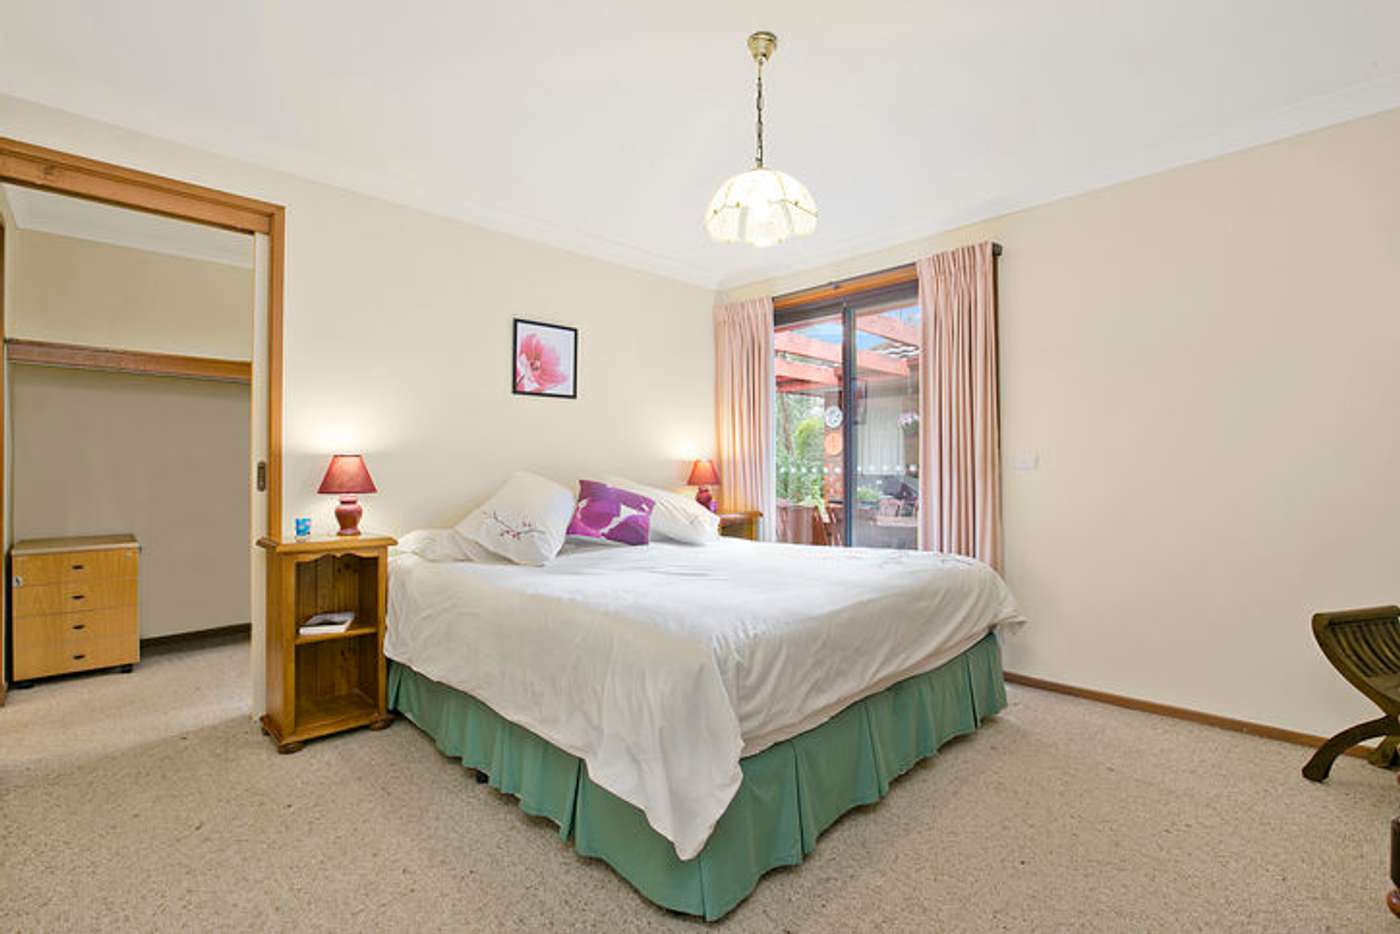 Fifth view of Homely house listing, 22 Scott Street(Enter via Bent St), Macedon VIC 3440